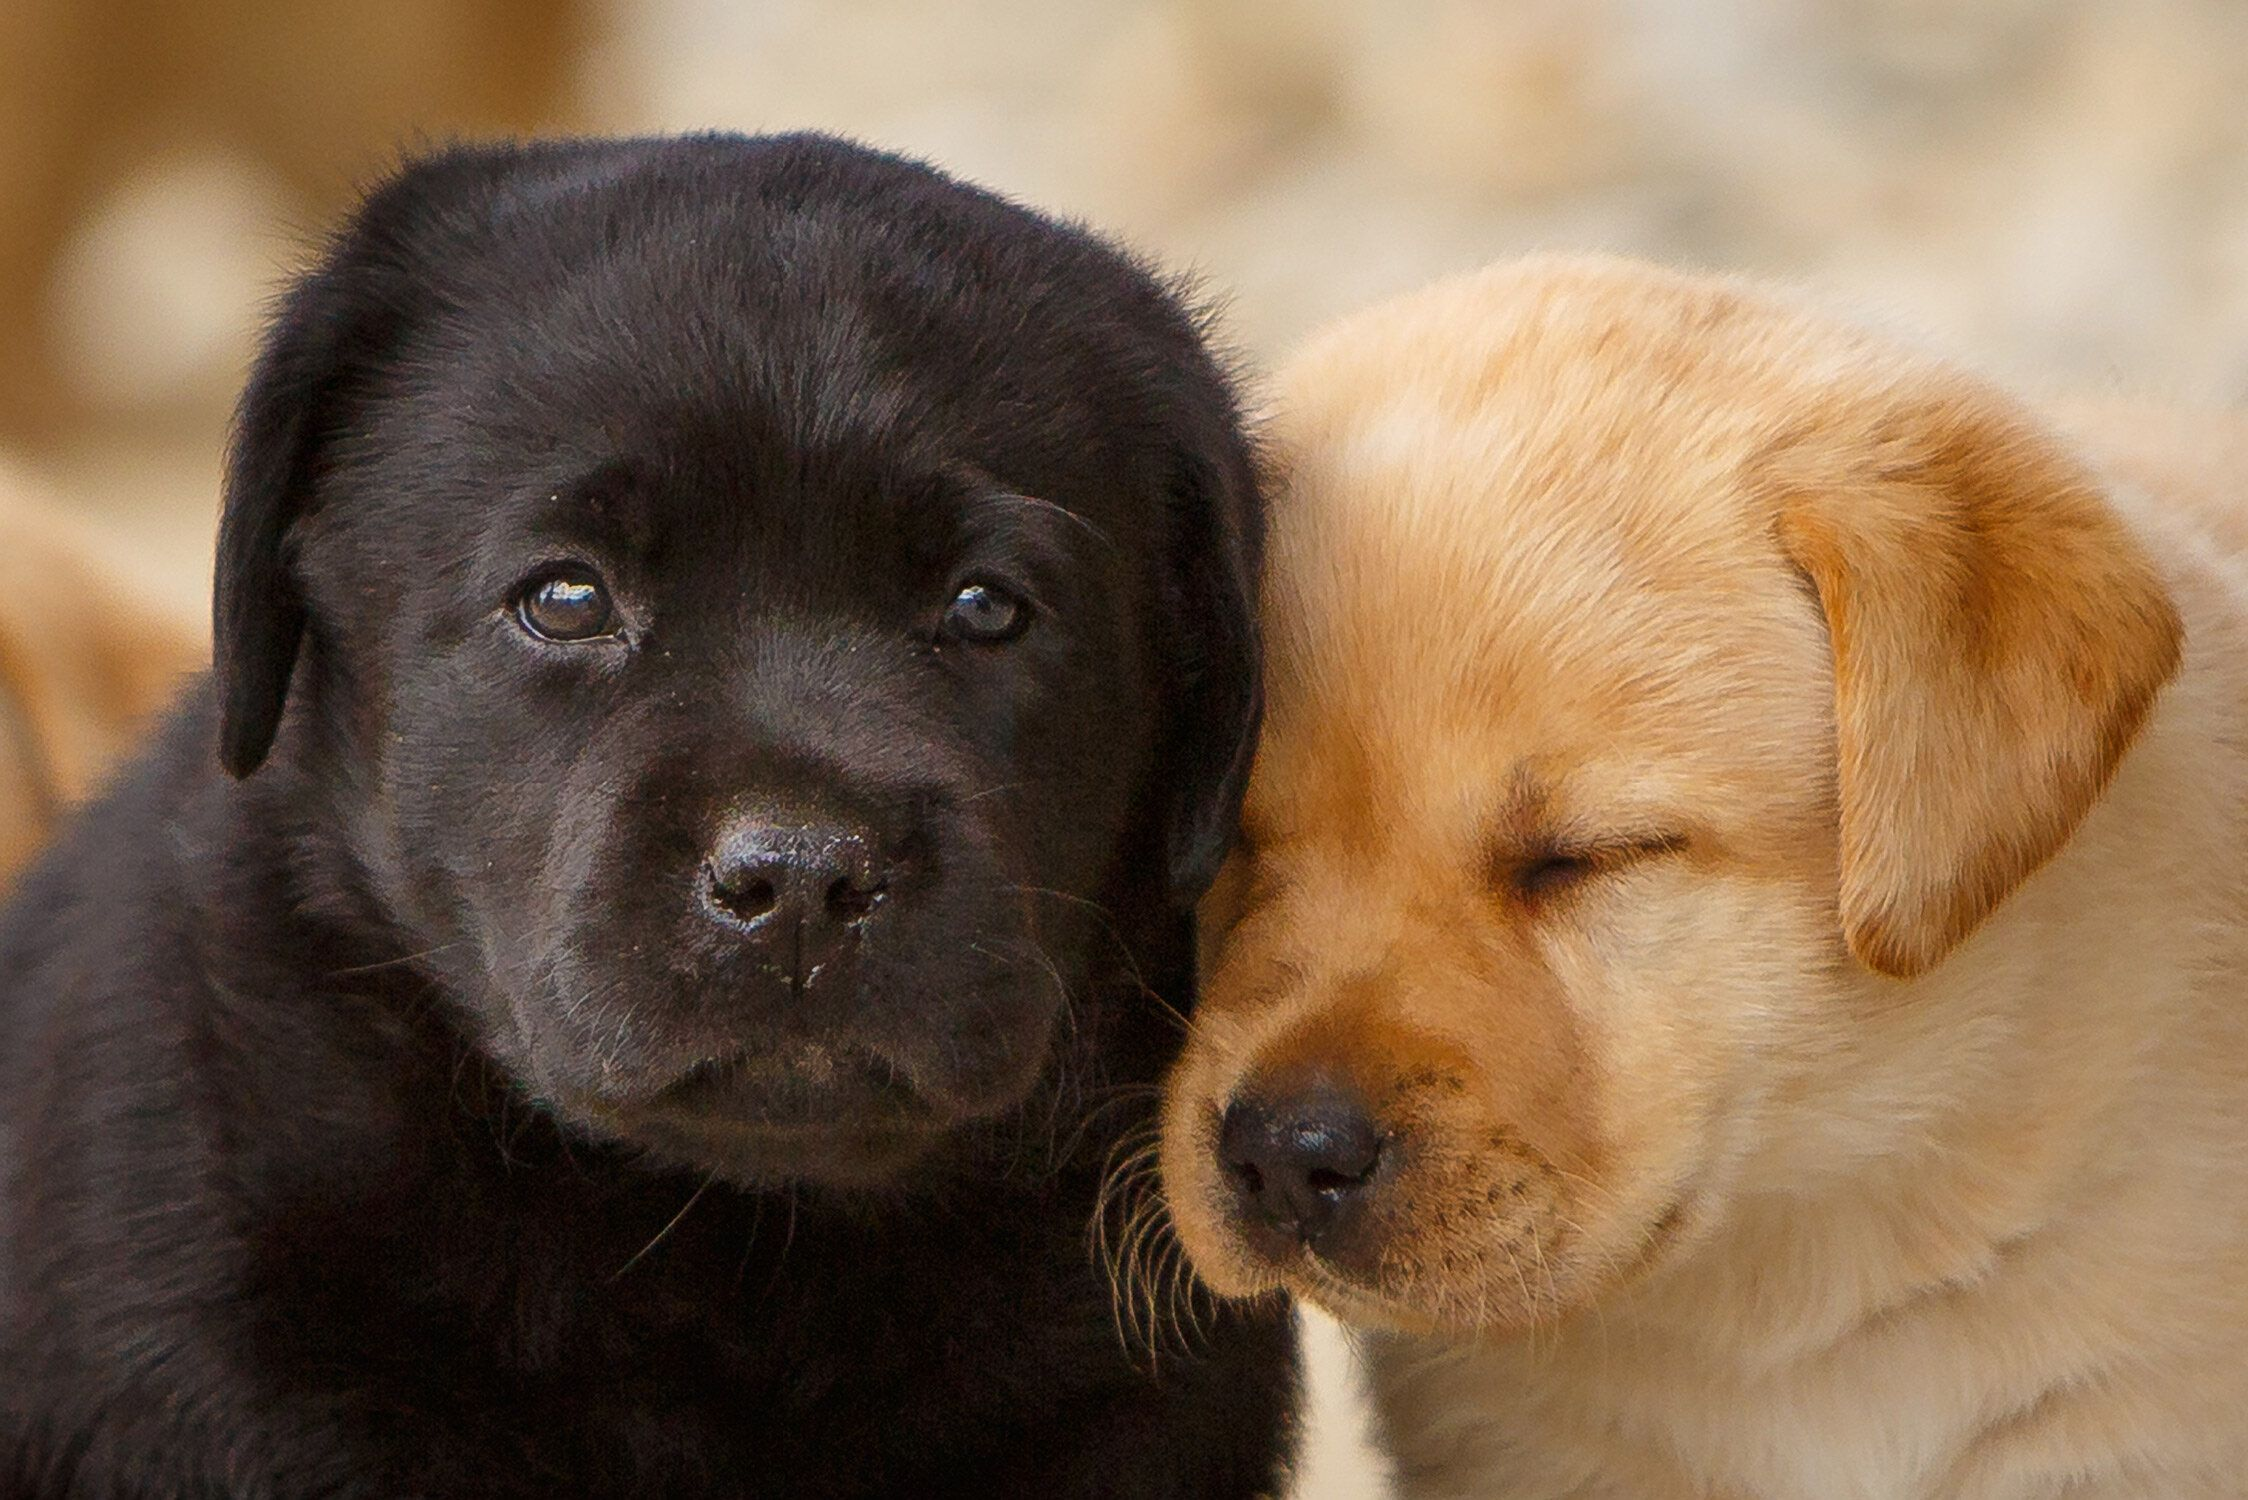 Daily dose march 21 2020 lean on me labrador